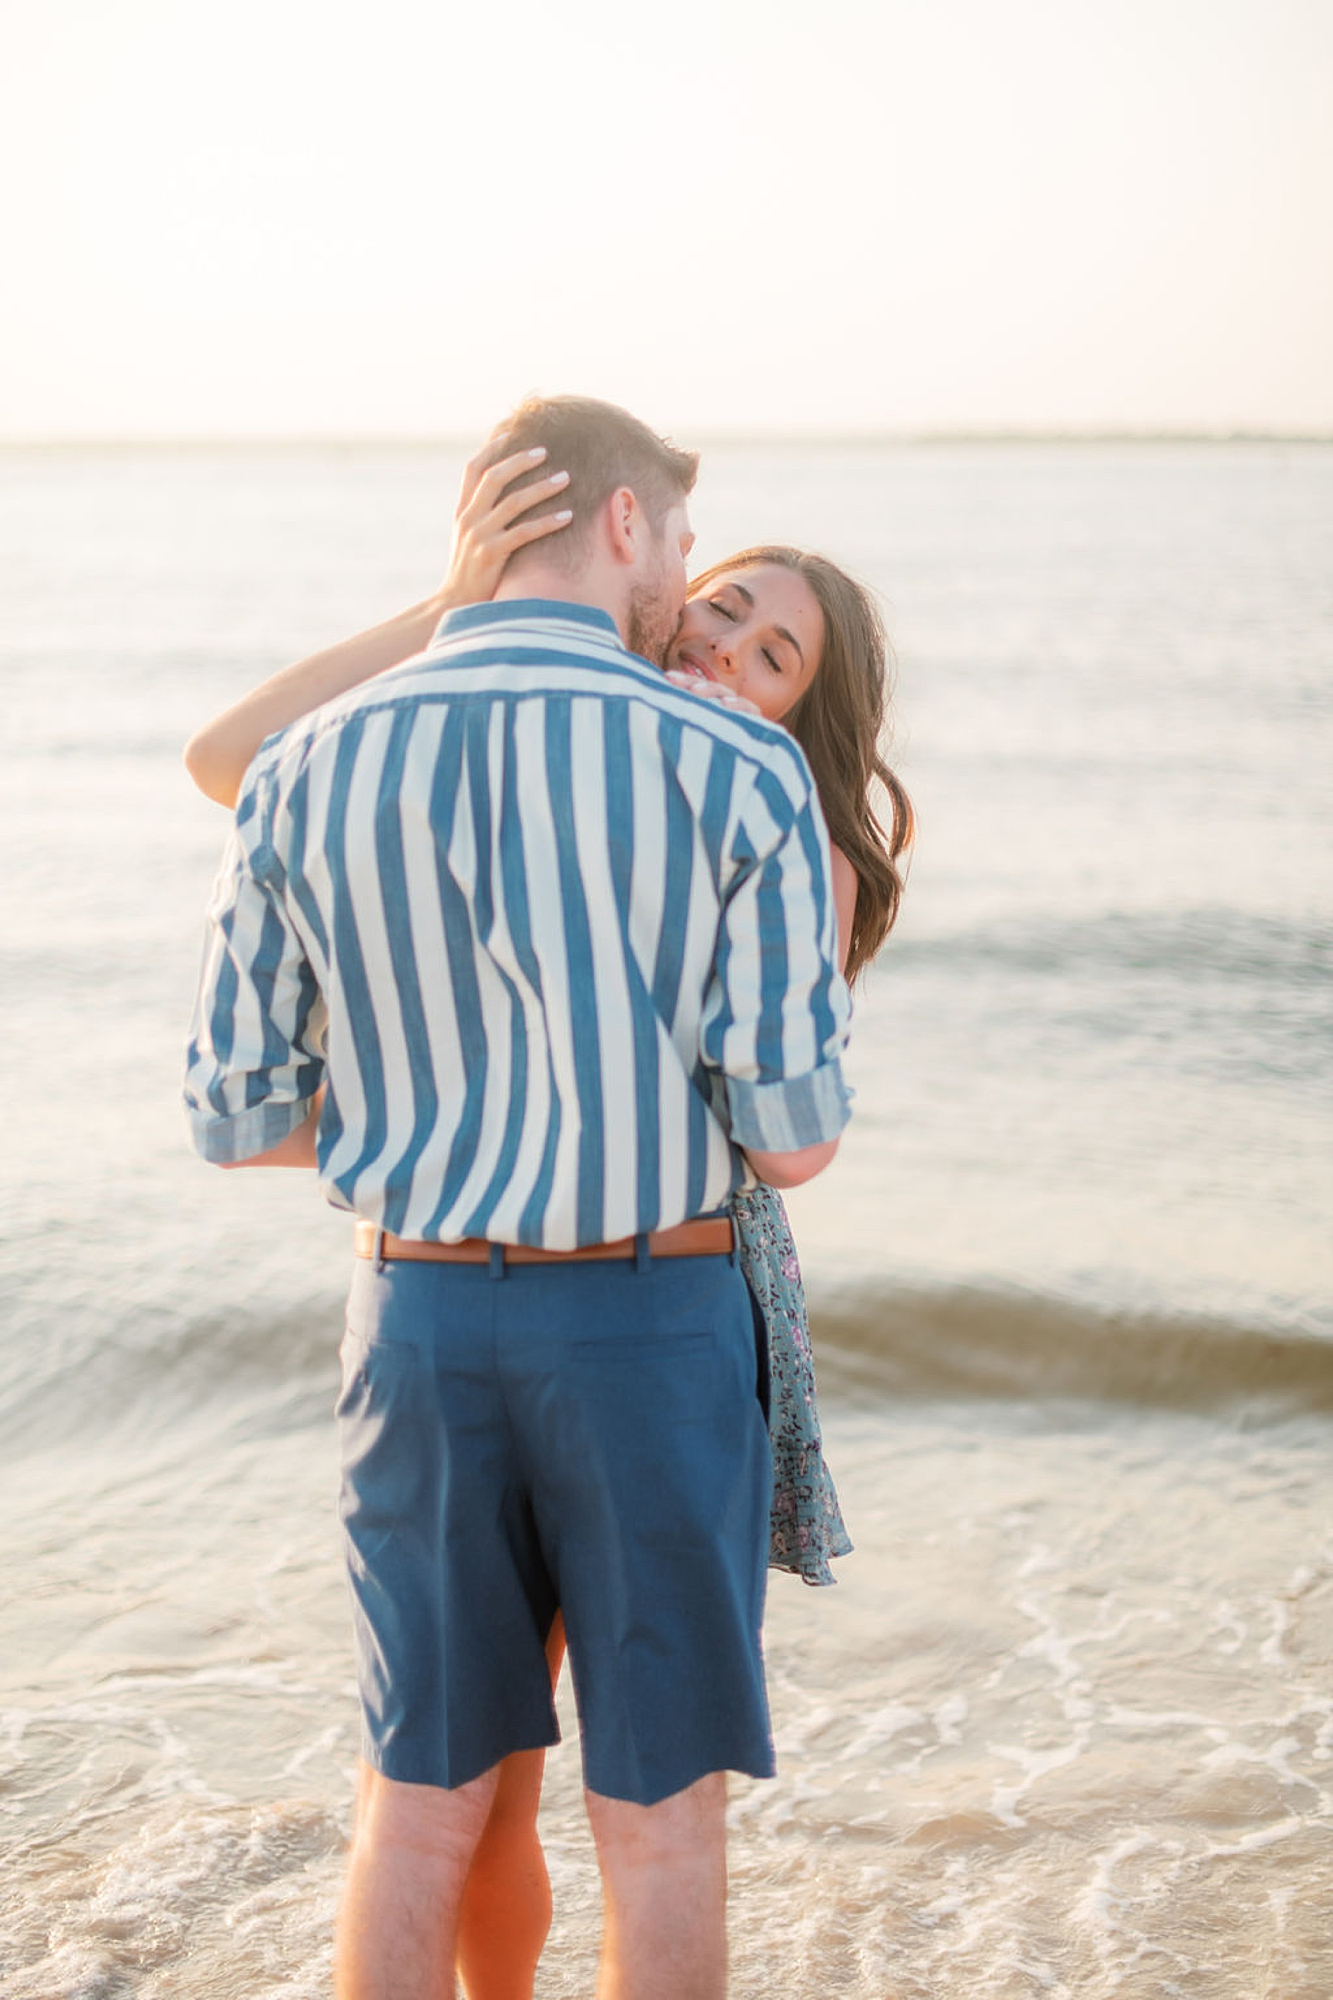 Bright and Fun Engagement Photography in Ocean City NJ by Magdalena Studios 0008